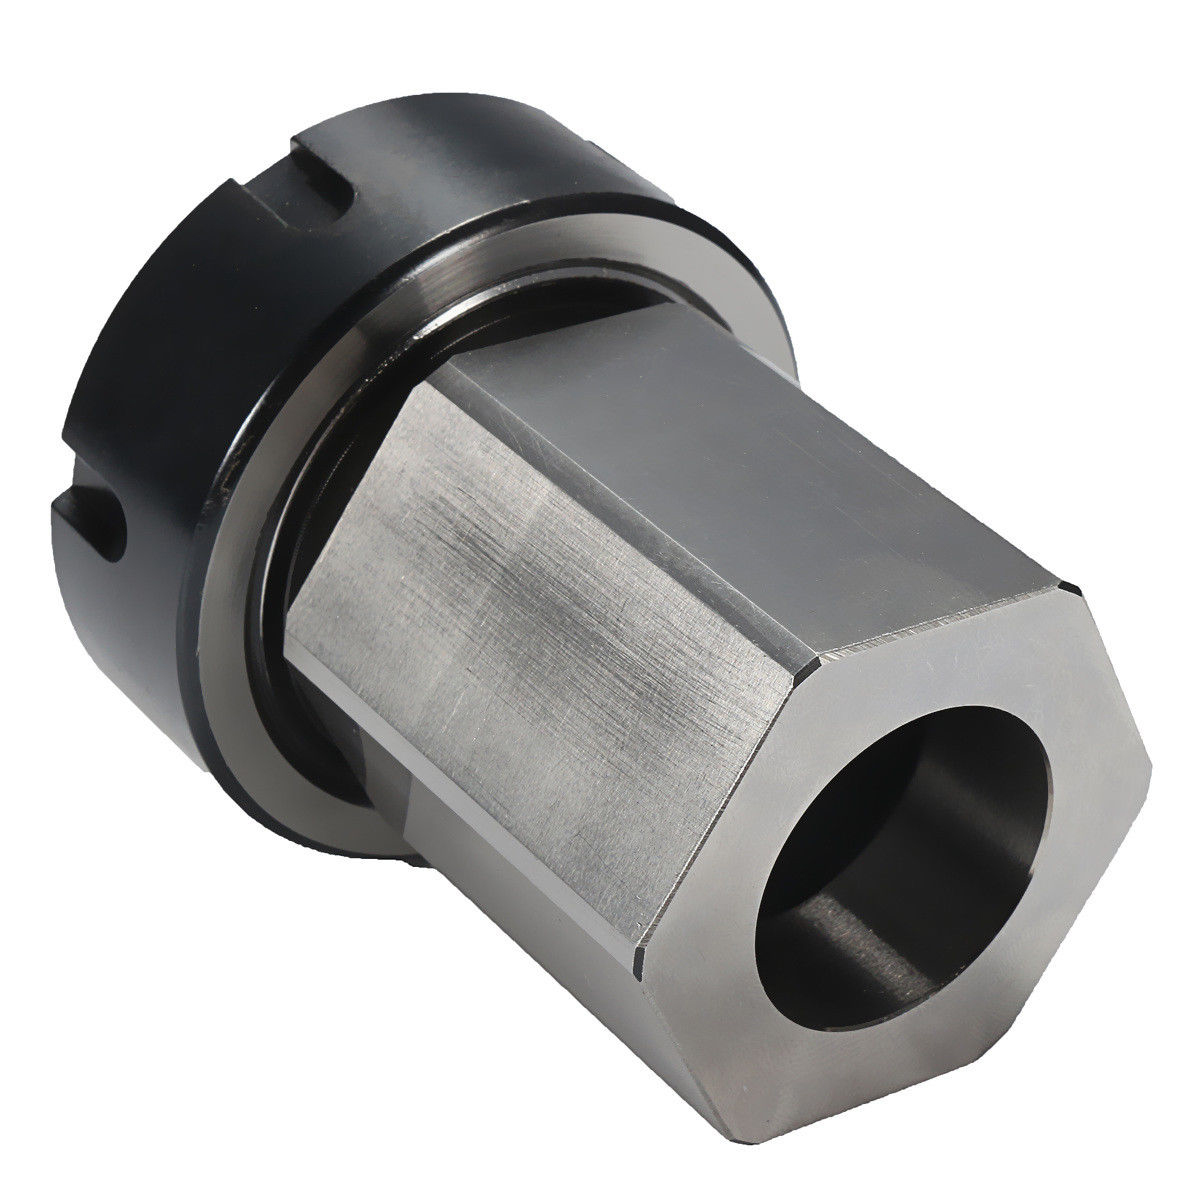 Square Hex ER40 Collet Block 80mm Collet Chuck Block Holder For Lathe Engraving Machine 1pc square er40 collet chuck block holder 3900 5125 for cnc lathe engraving machine cross hole drilling